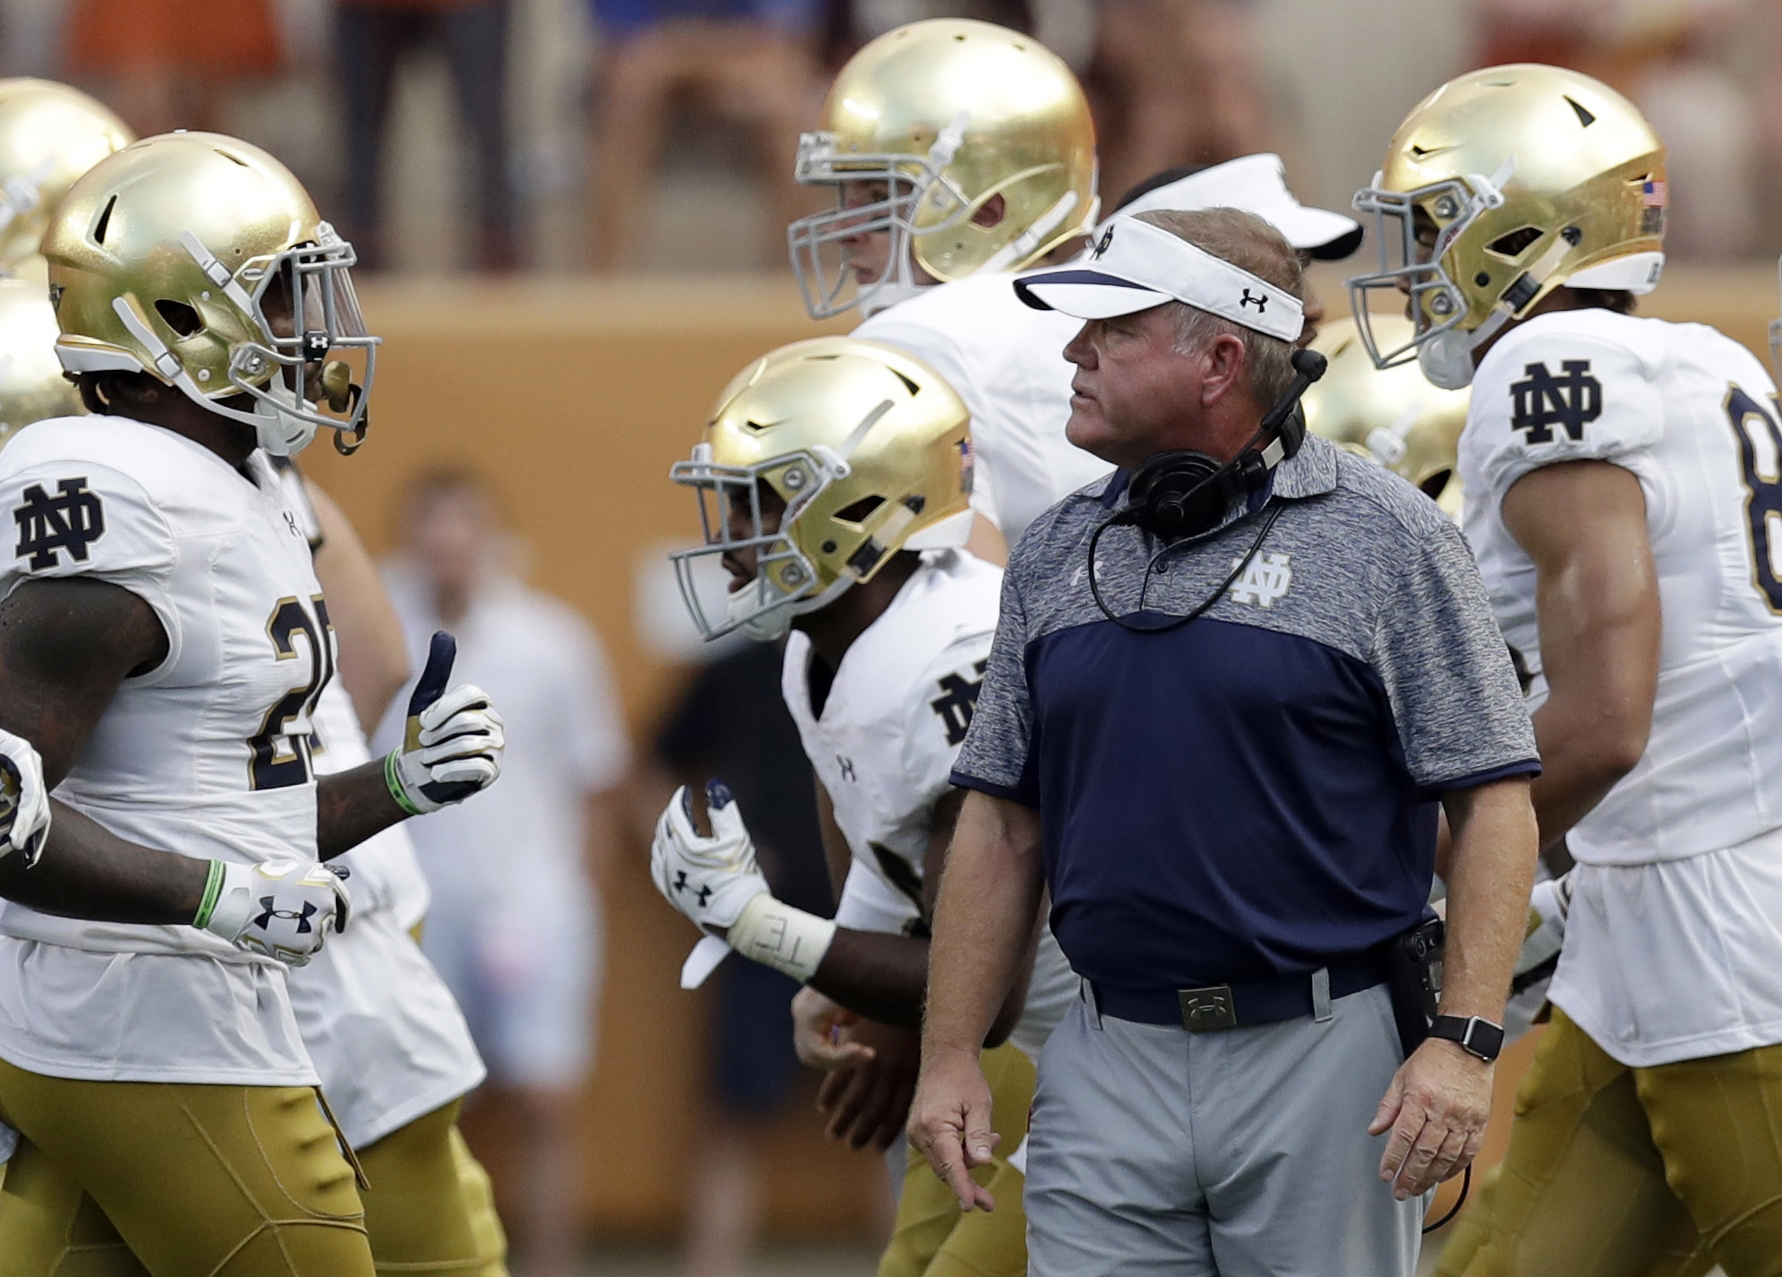 FILE - In this Sunday, Sept. 4, 2016, file photo, Notre Dame head coach Brian Kelly, center, watches as his players run off the field during the first half of an NCAA college football game against Texas in Austin, Texas. Simpler and louder have meant bett